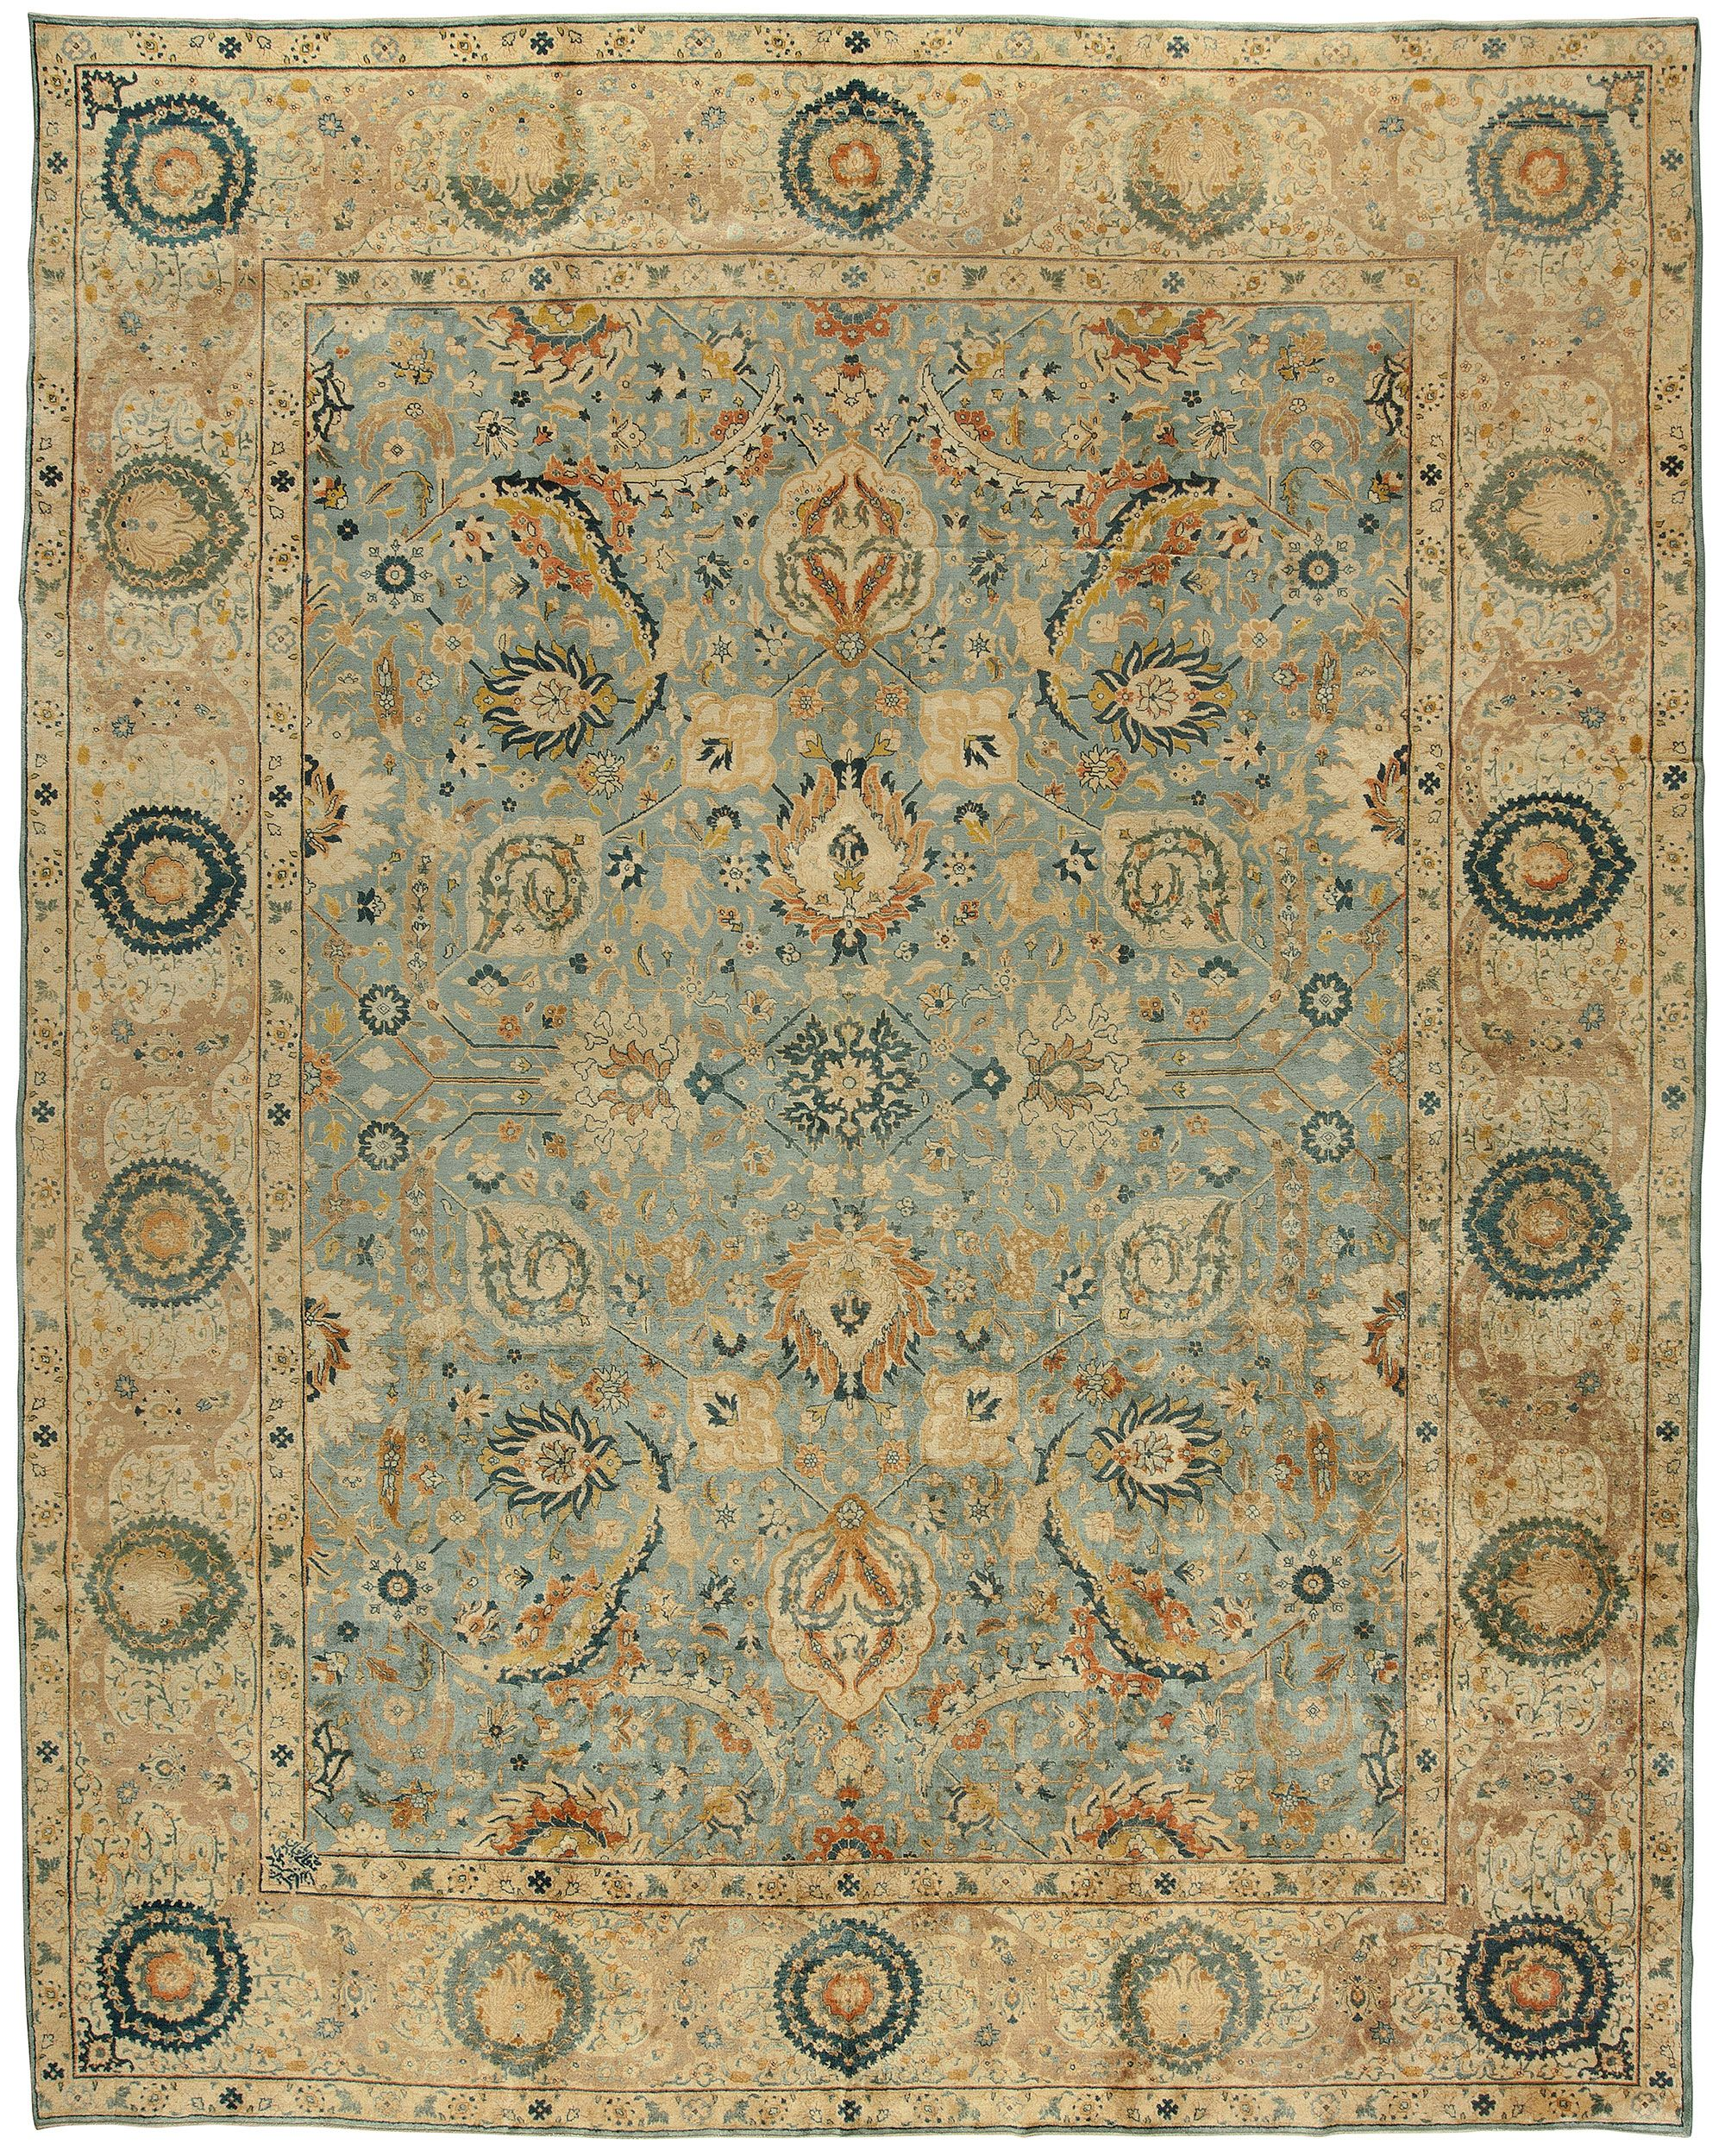 Antique Persian Tabriz Rug Rugs On Carpet Persian Tabriz Rug Tabriz Rug